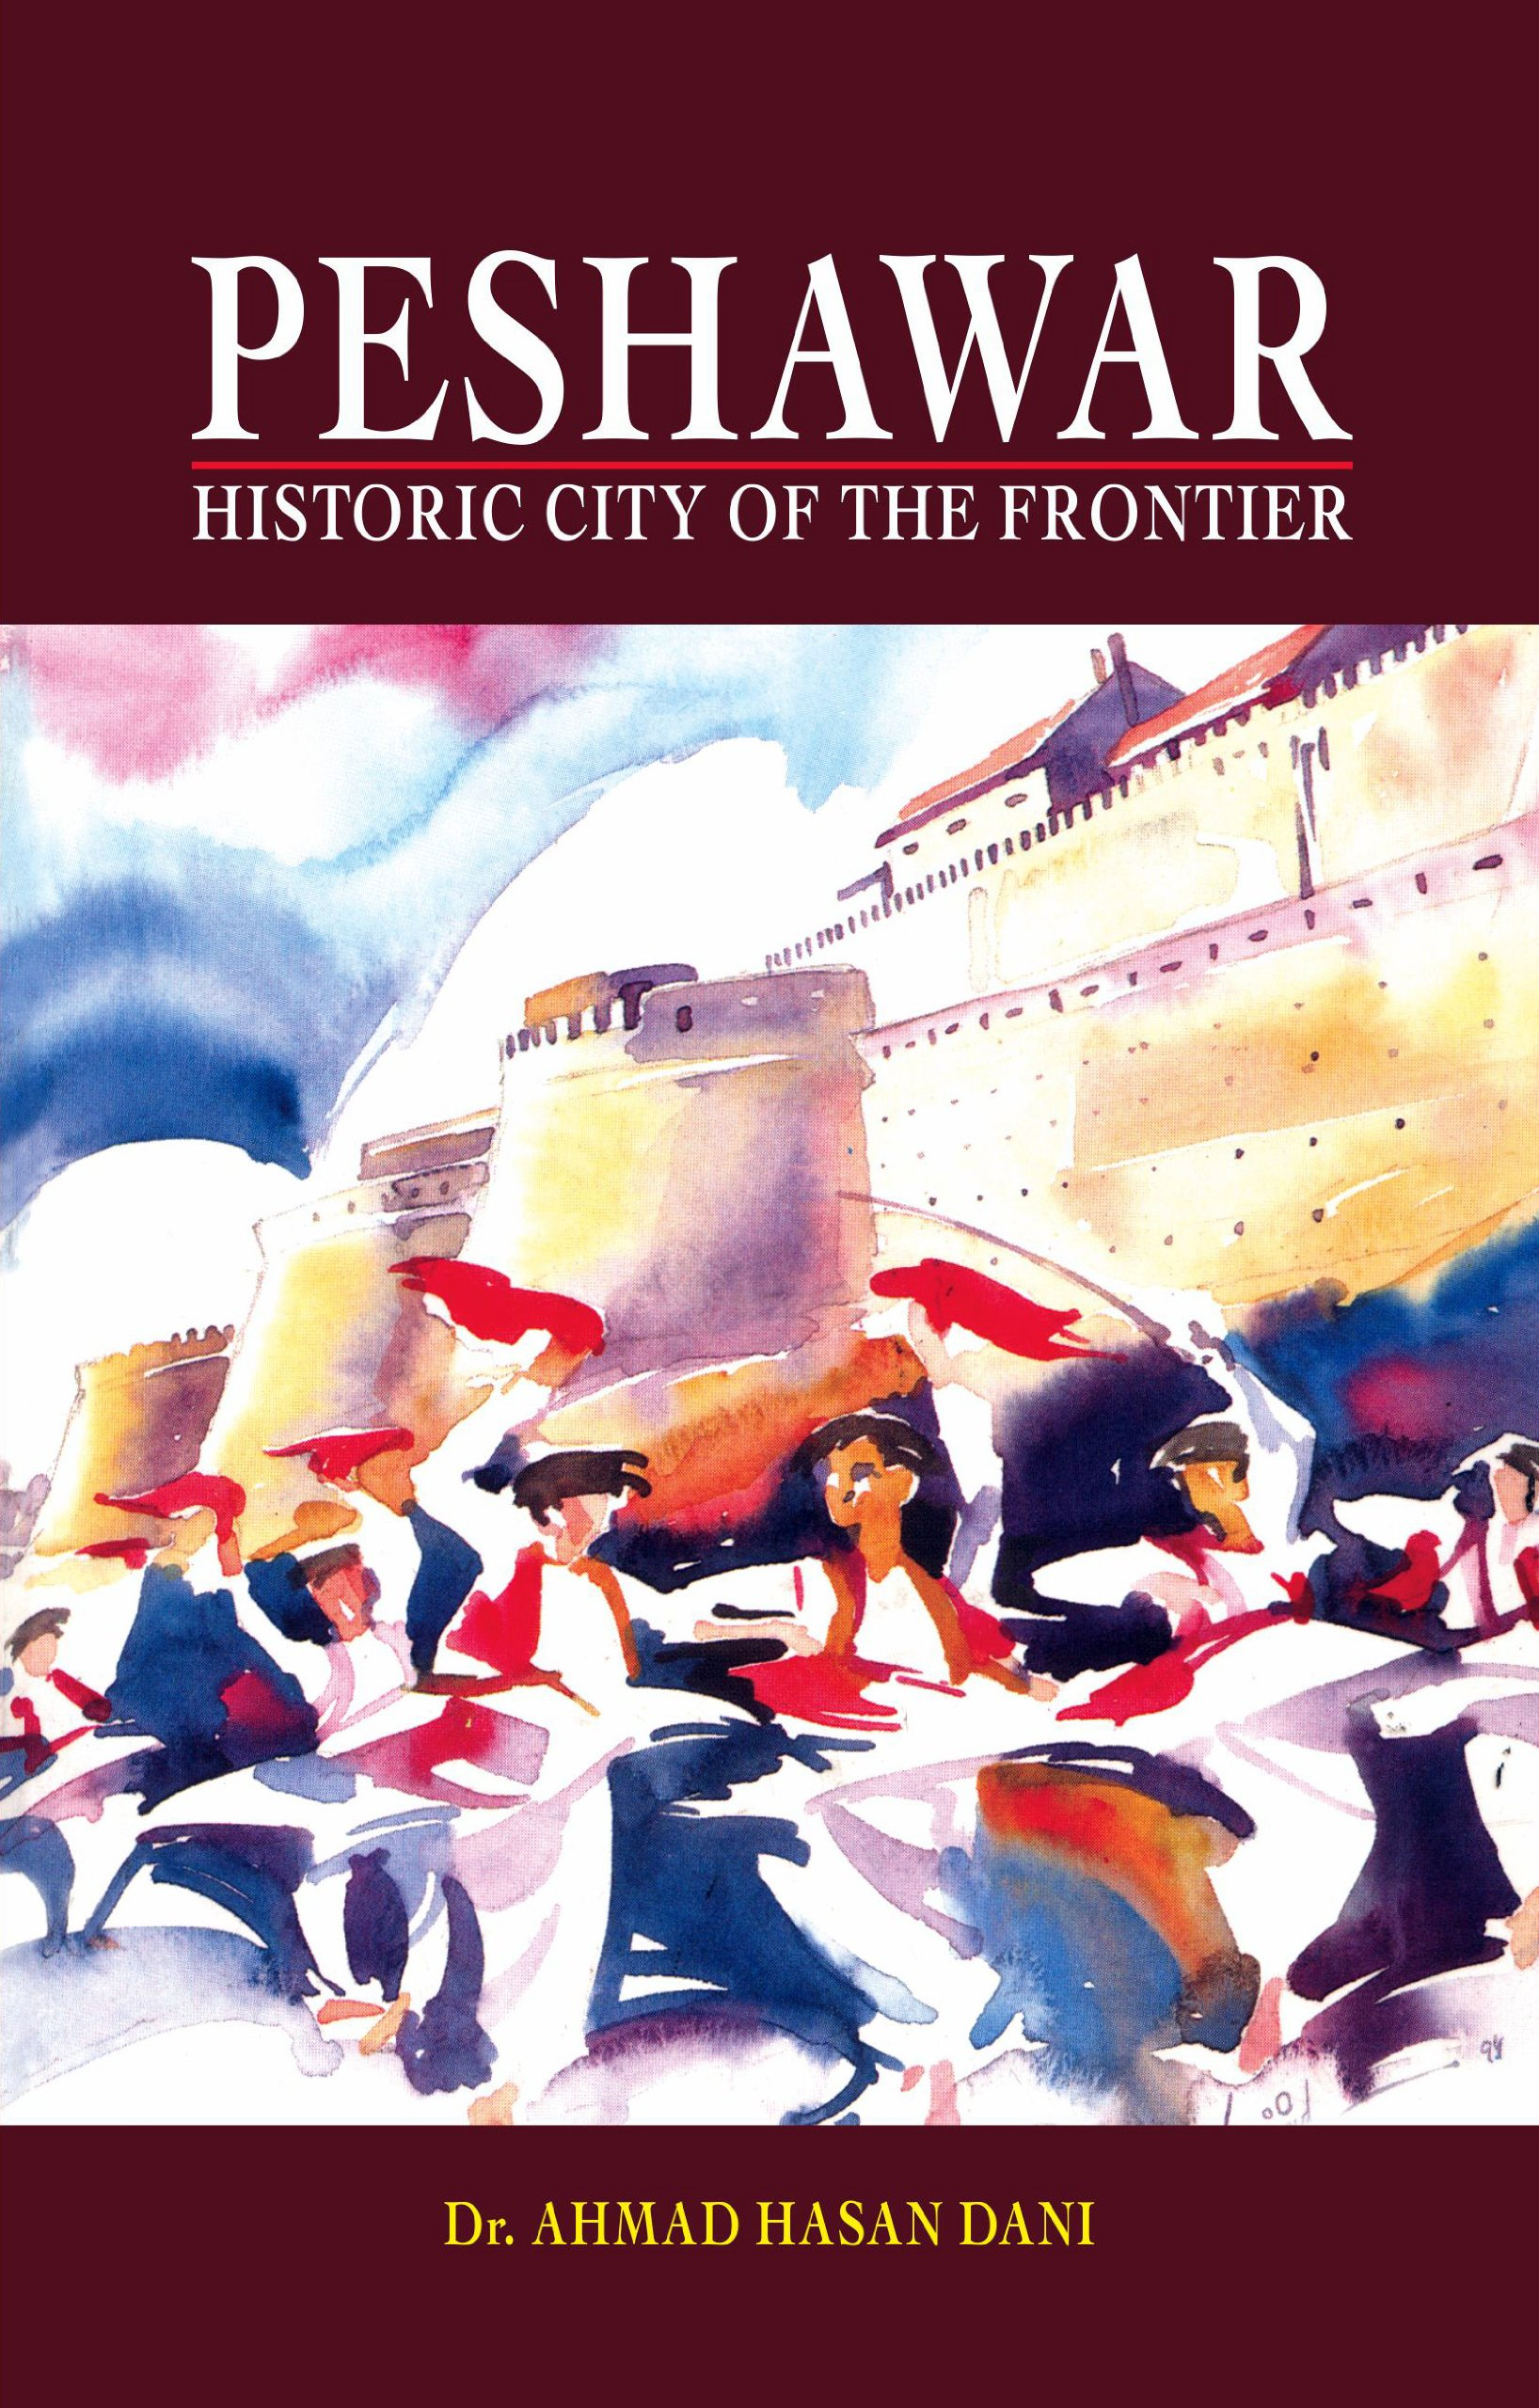 Peshawar: Historic City of the Frontier